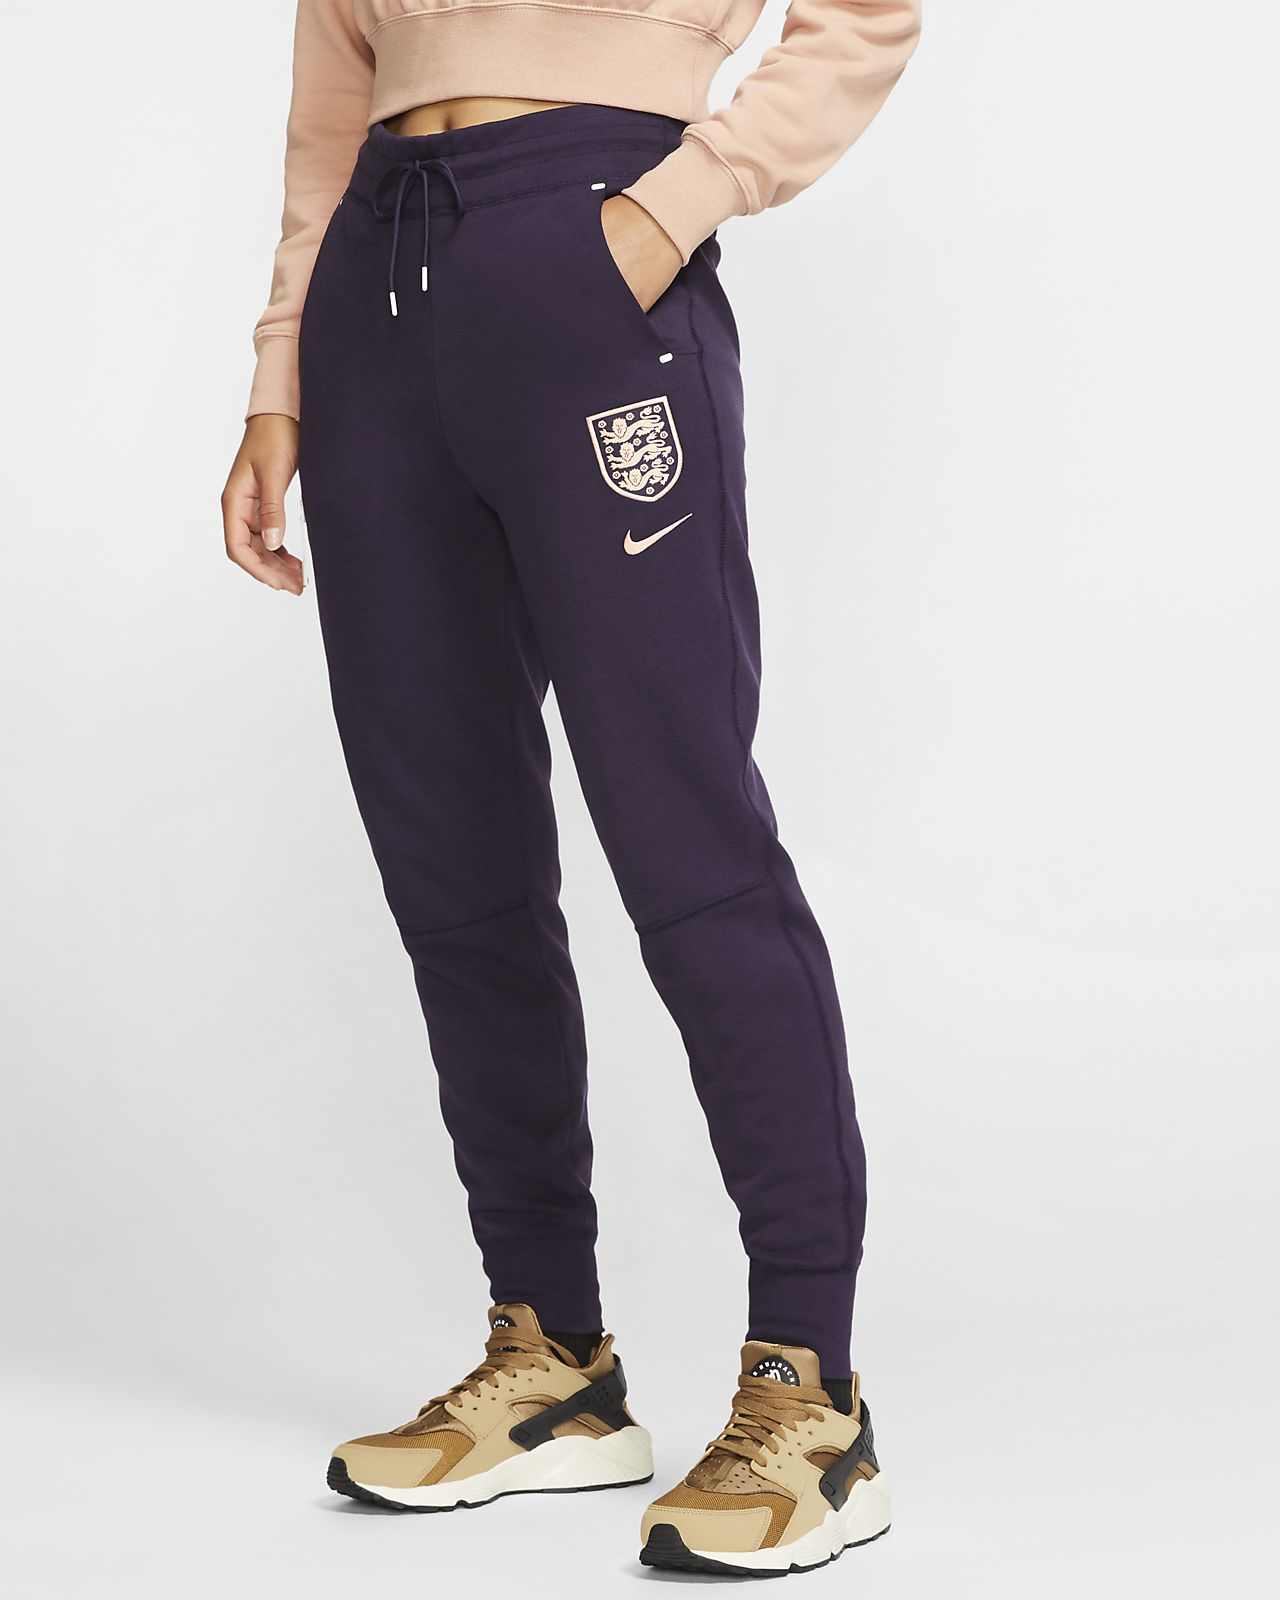 England Tech Fleece Damen-Fußballhose